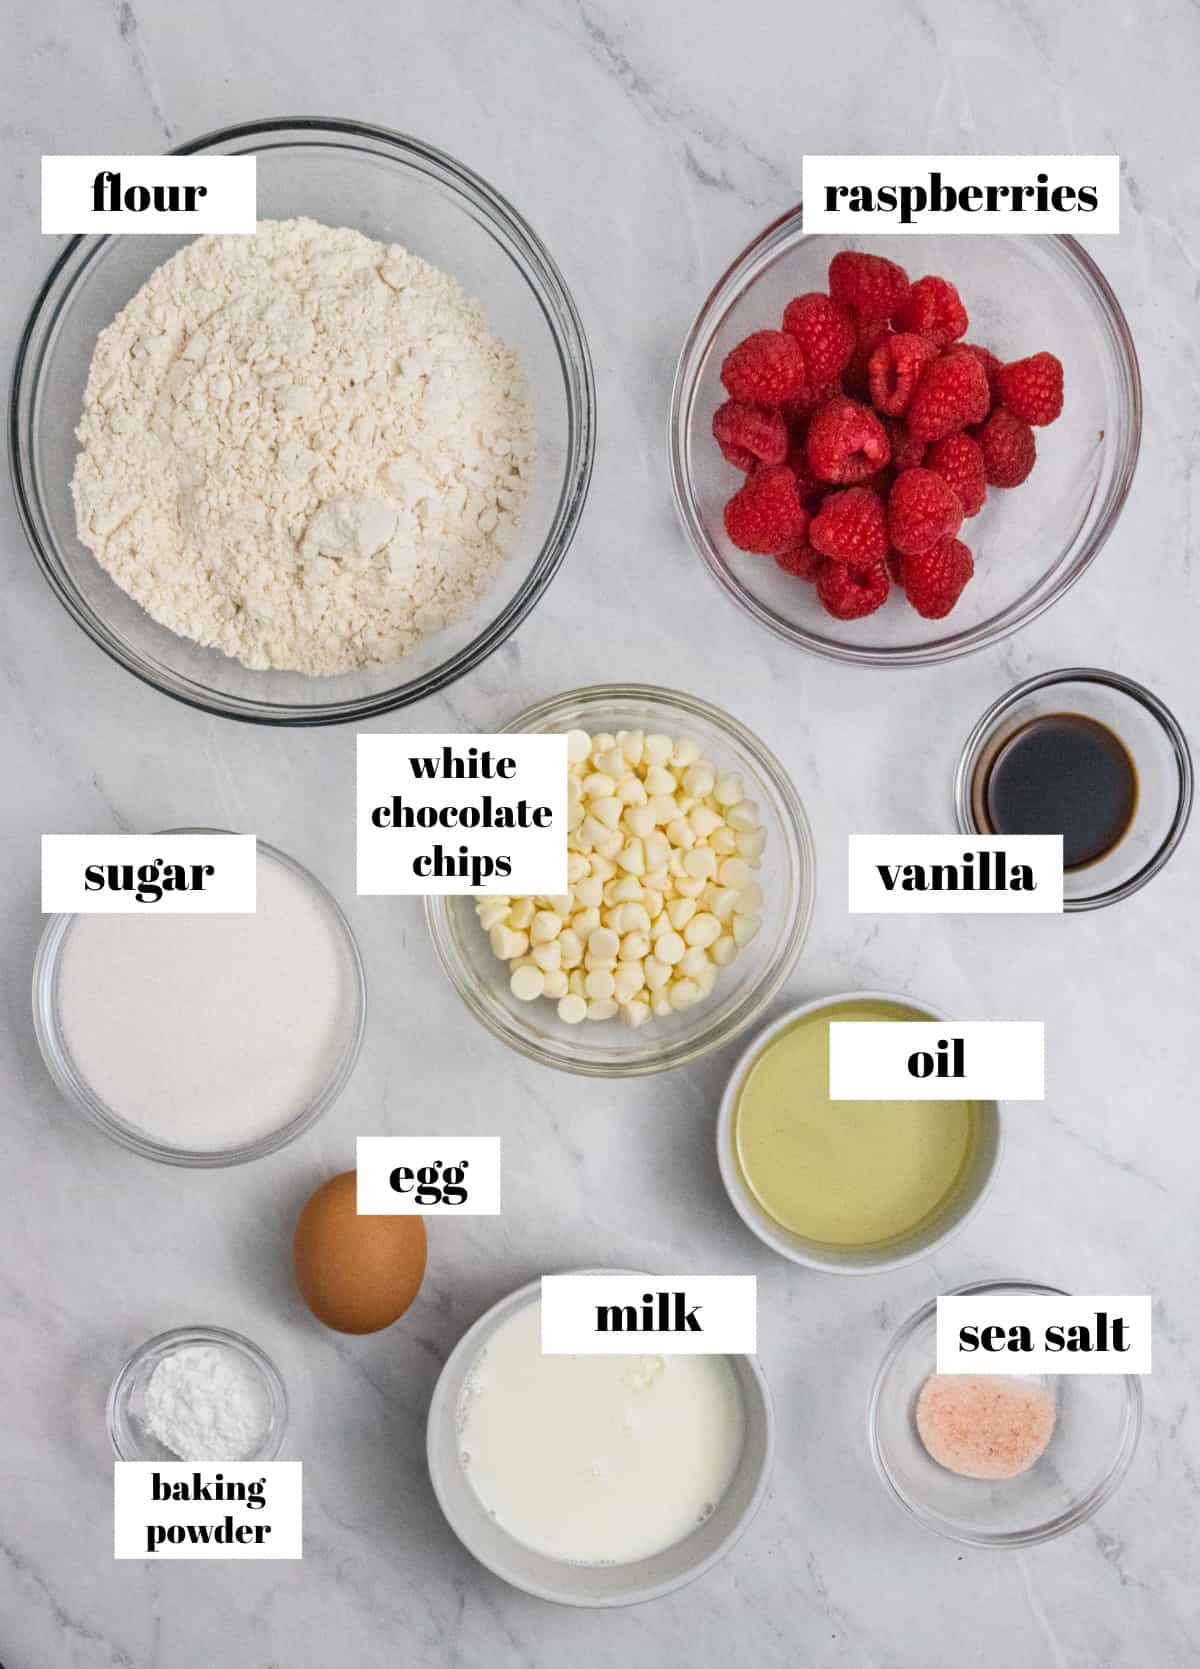 Flour, sugar, oil and other ingredients labeled on counter.